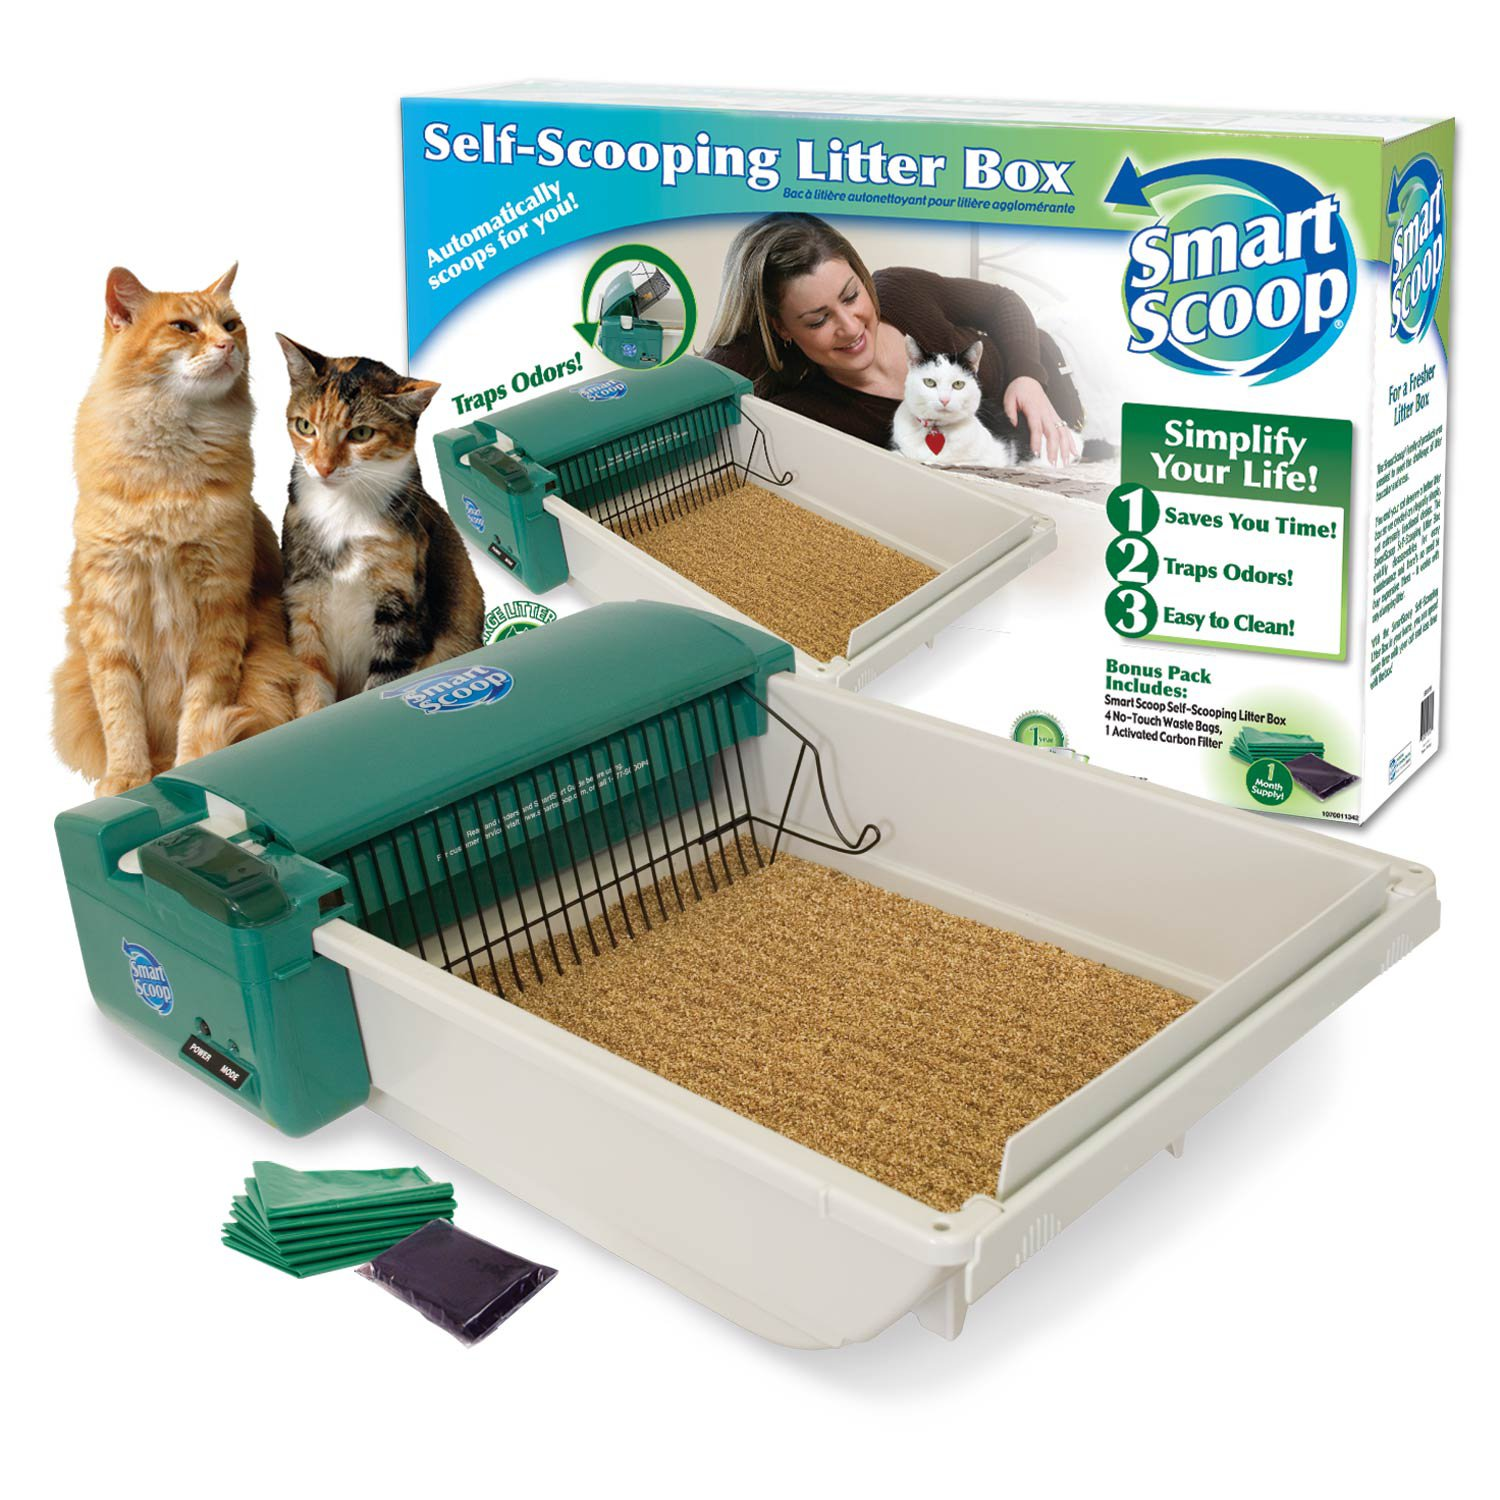 Dust-free cat litter is a popular option for hypoallergenic or sensitive pets. Find the right dust-free cat litter package for your cat at Petco.